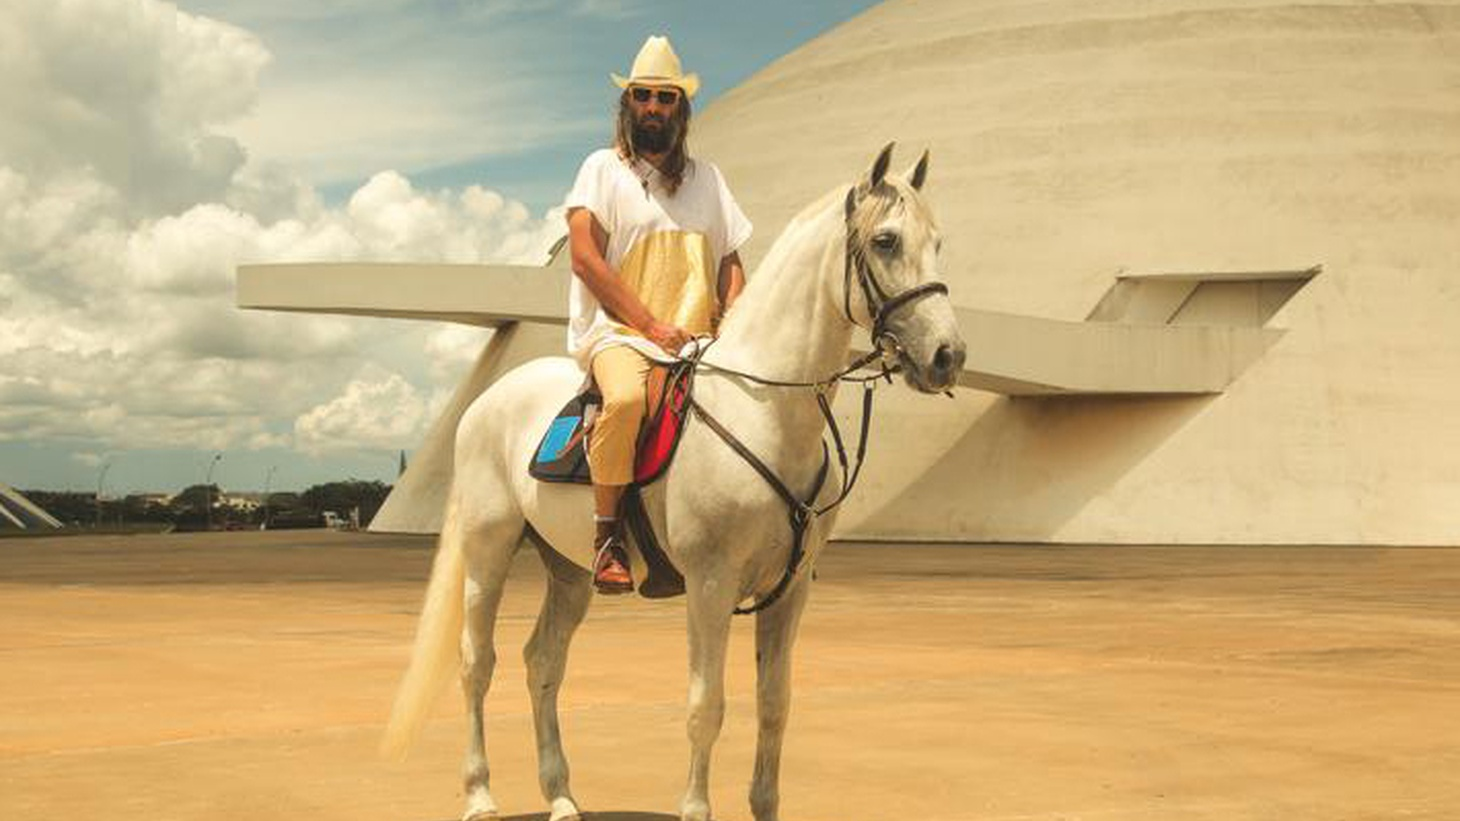 """Seductively French, Sebastien Tellier reconstructs his childhood through an aural fantasy inspired by tropical Brazilian sounds with a cool 70's vibe. Today's Top Tune is """"Sous Les Rayons Du Soleil"""" (Under The Rays of the Sun)."""